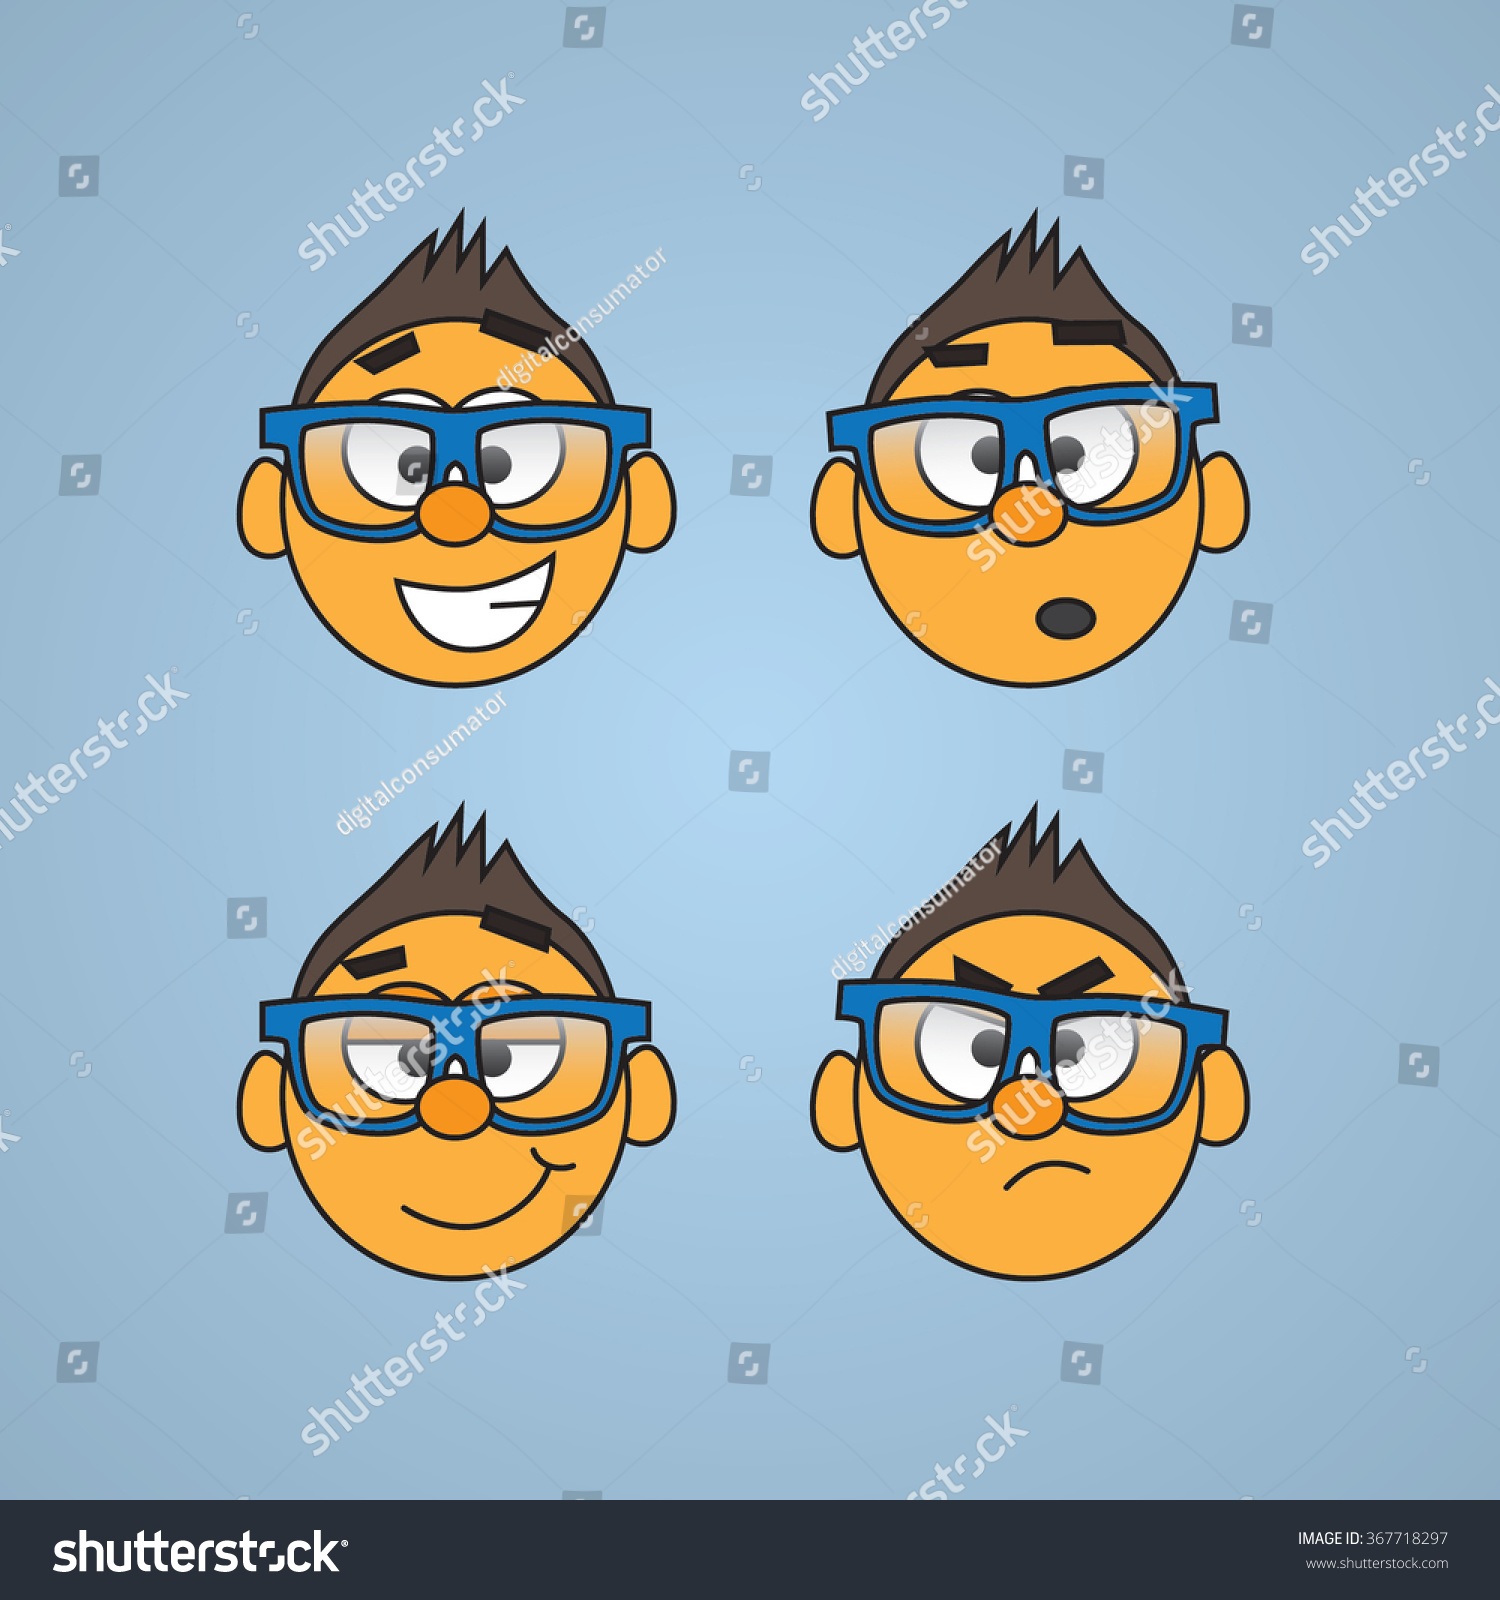 Superior Set Of Vector Drawn Faces With Blue Glasses   Smiles, Different Moods Great Ideas